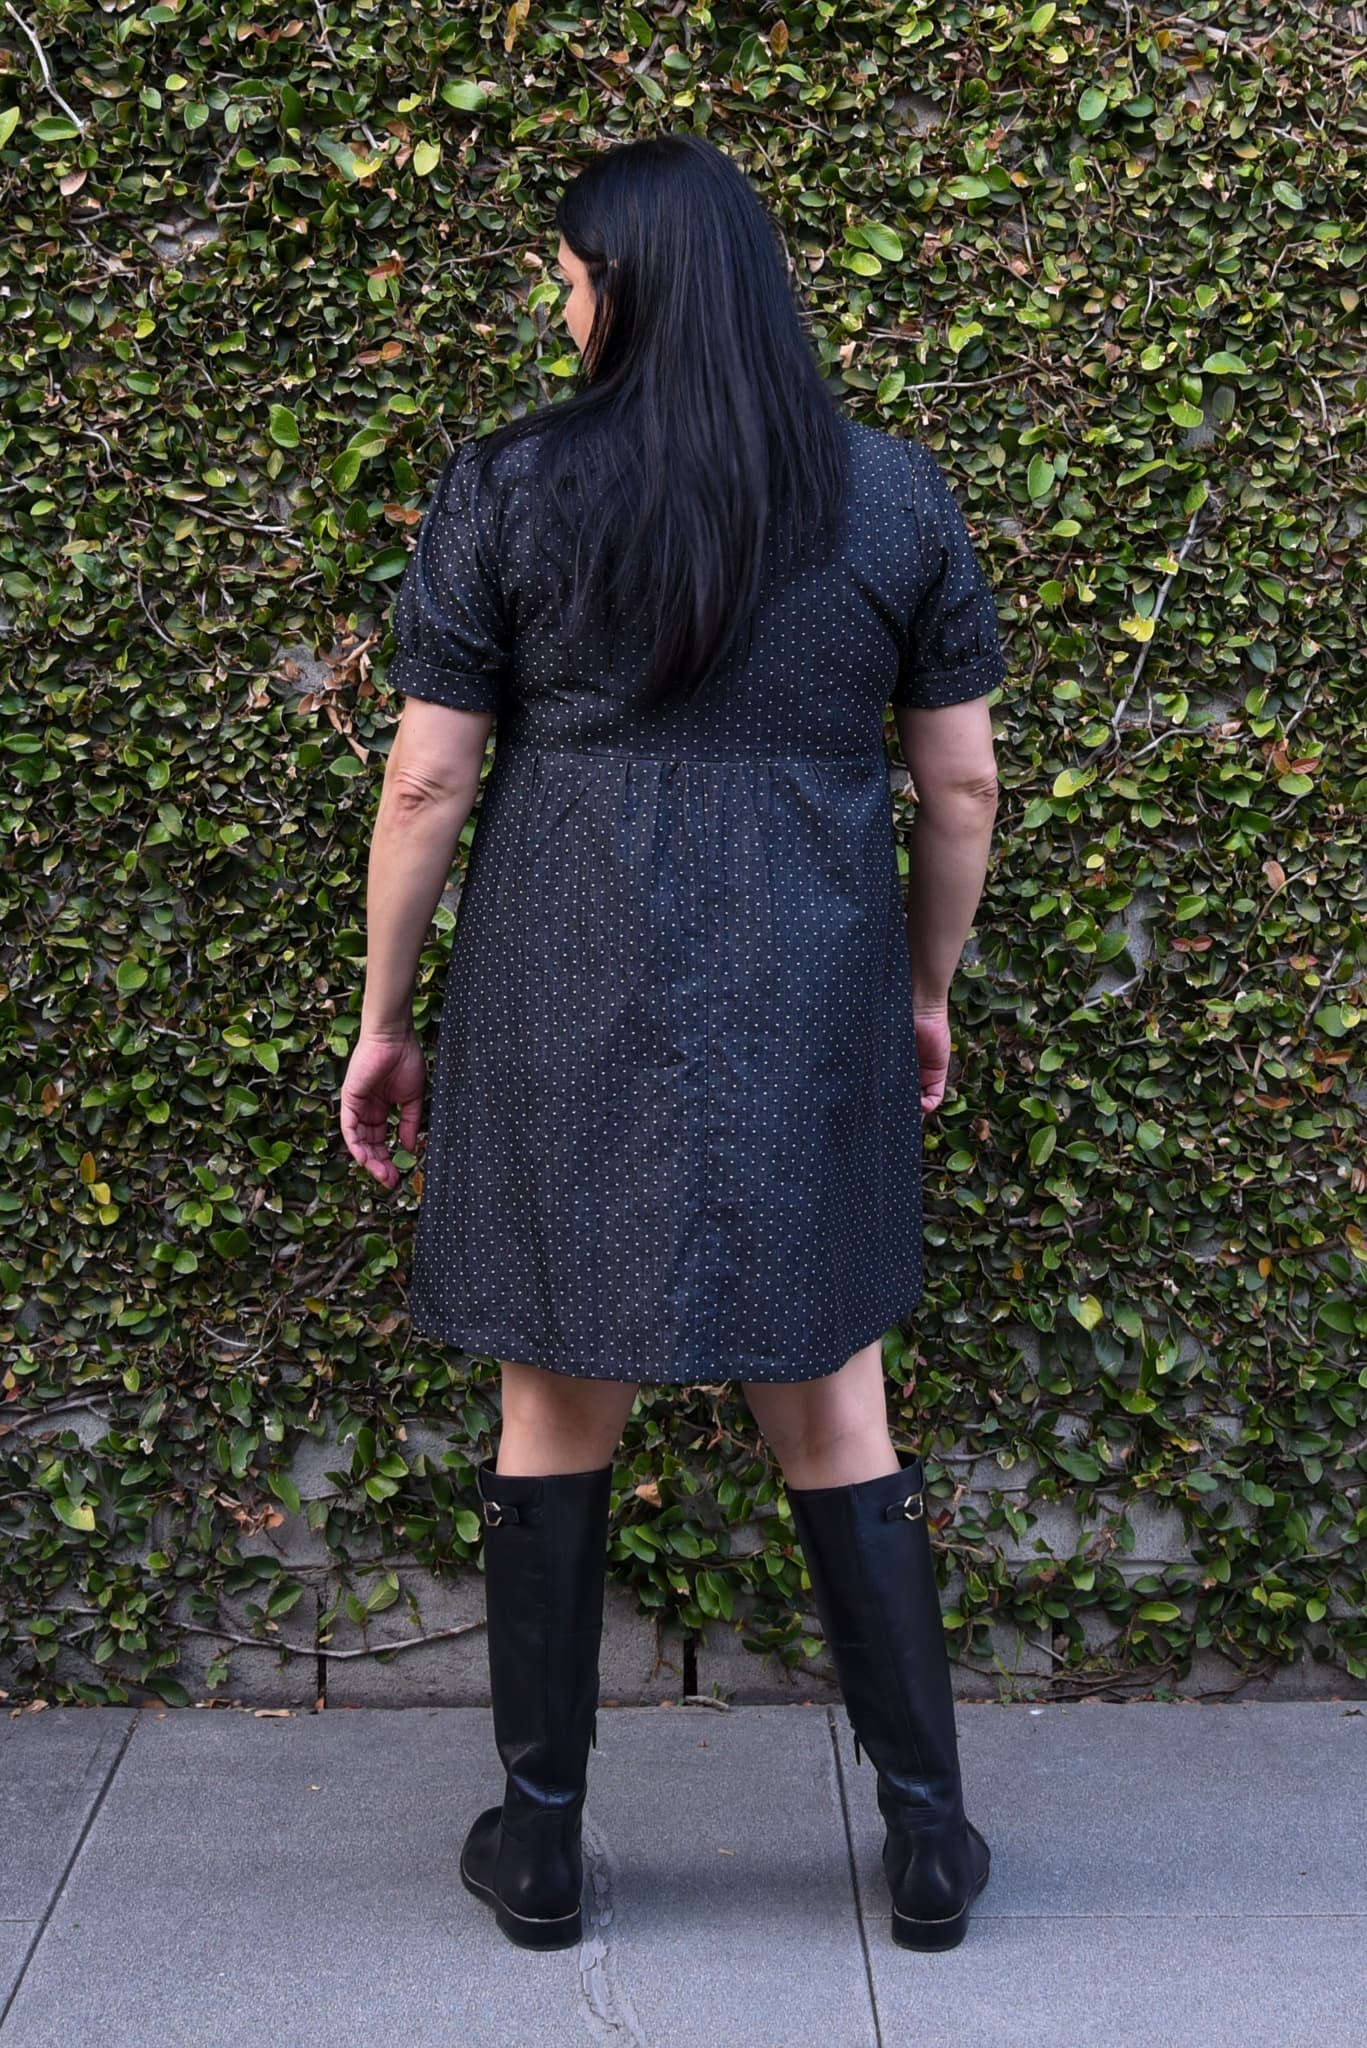 Image of woman standing with her back to the camera in front of an ivy-covered wall wearing a fauxwrap dress in a black cotton chambray with white polka dots.